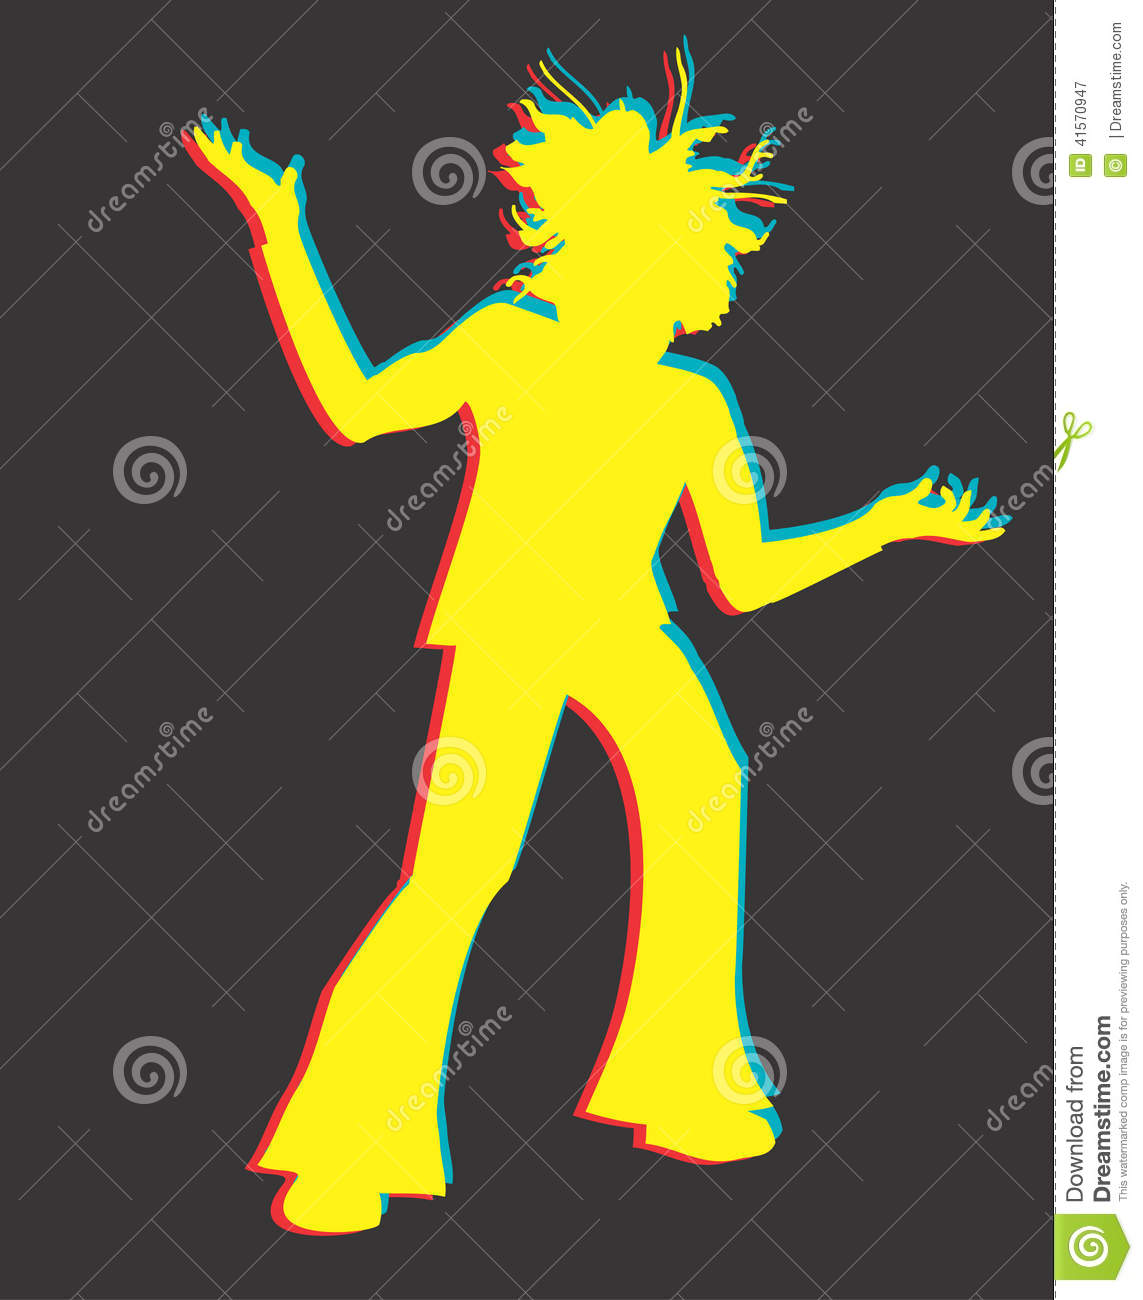 Jamaican Man Vector Design Clipart Stock Vector - Image: 41570947